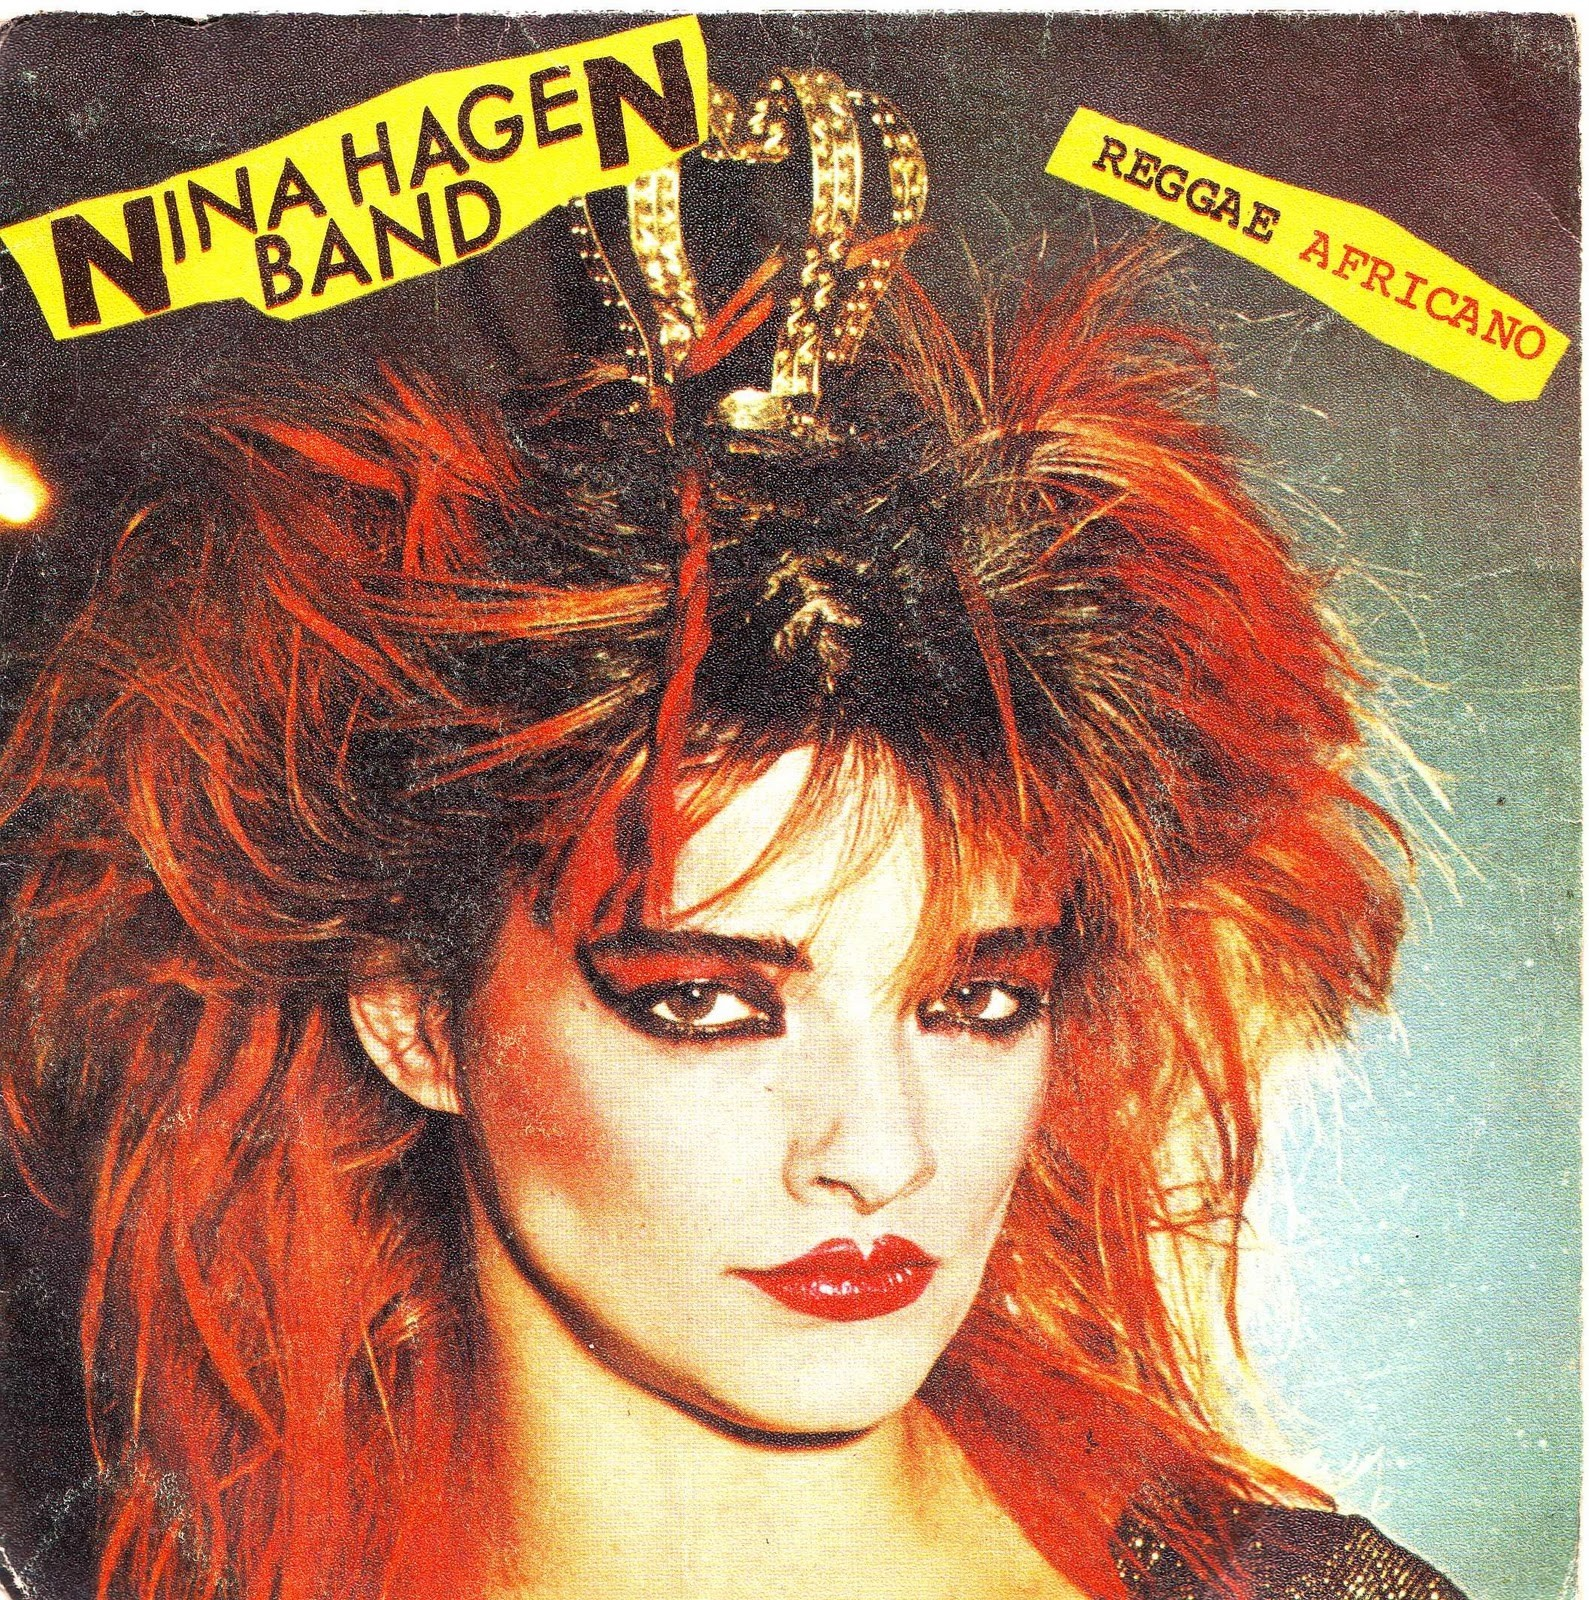 Nina Hagen - the godmother of punk